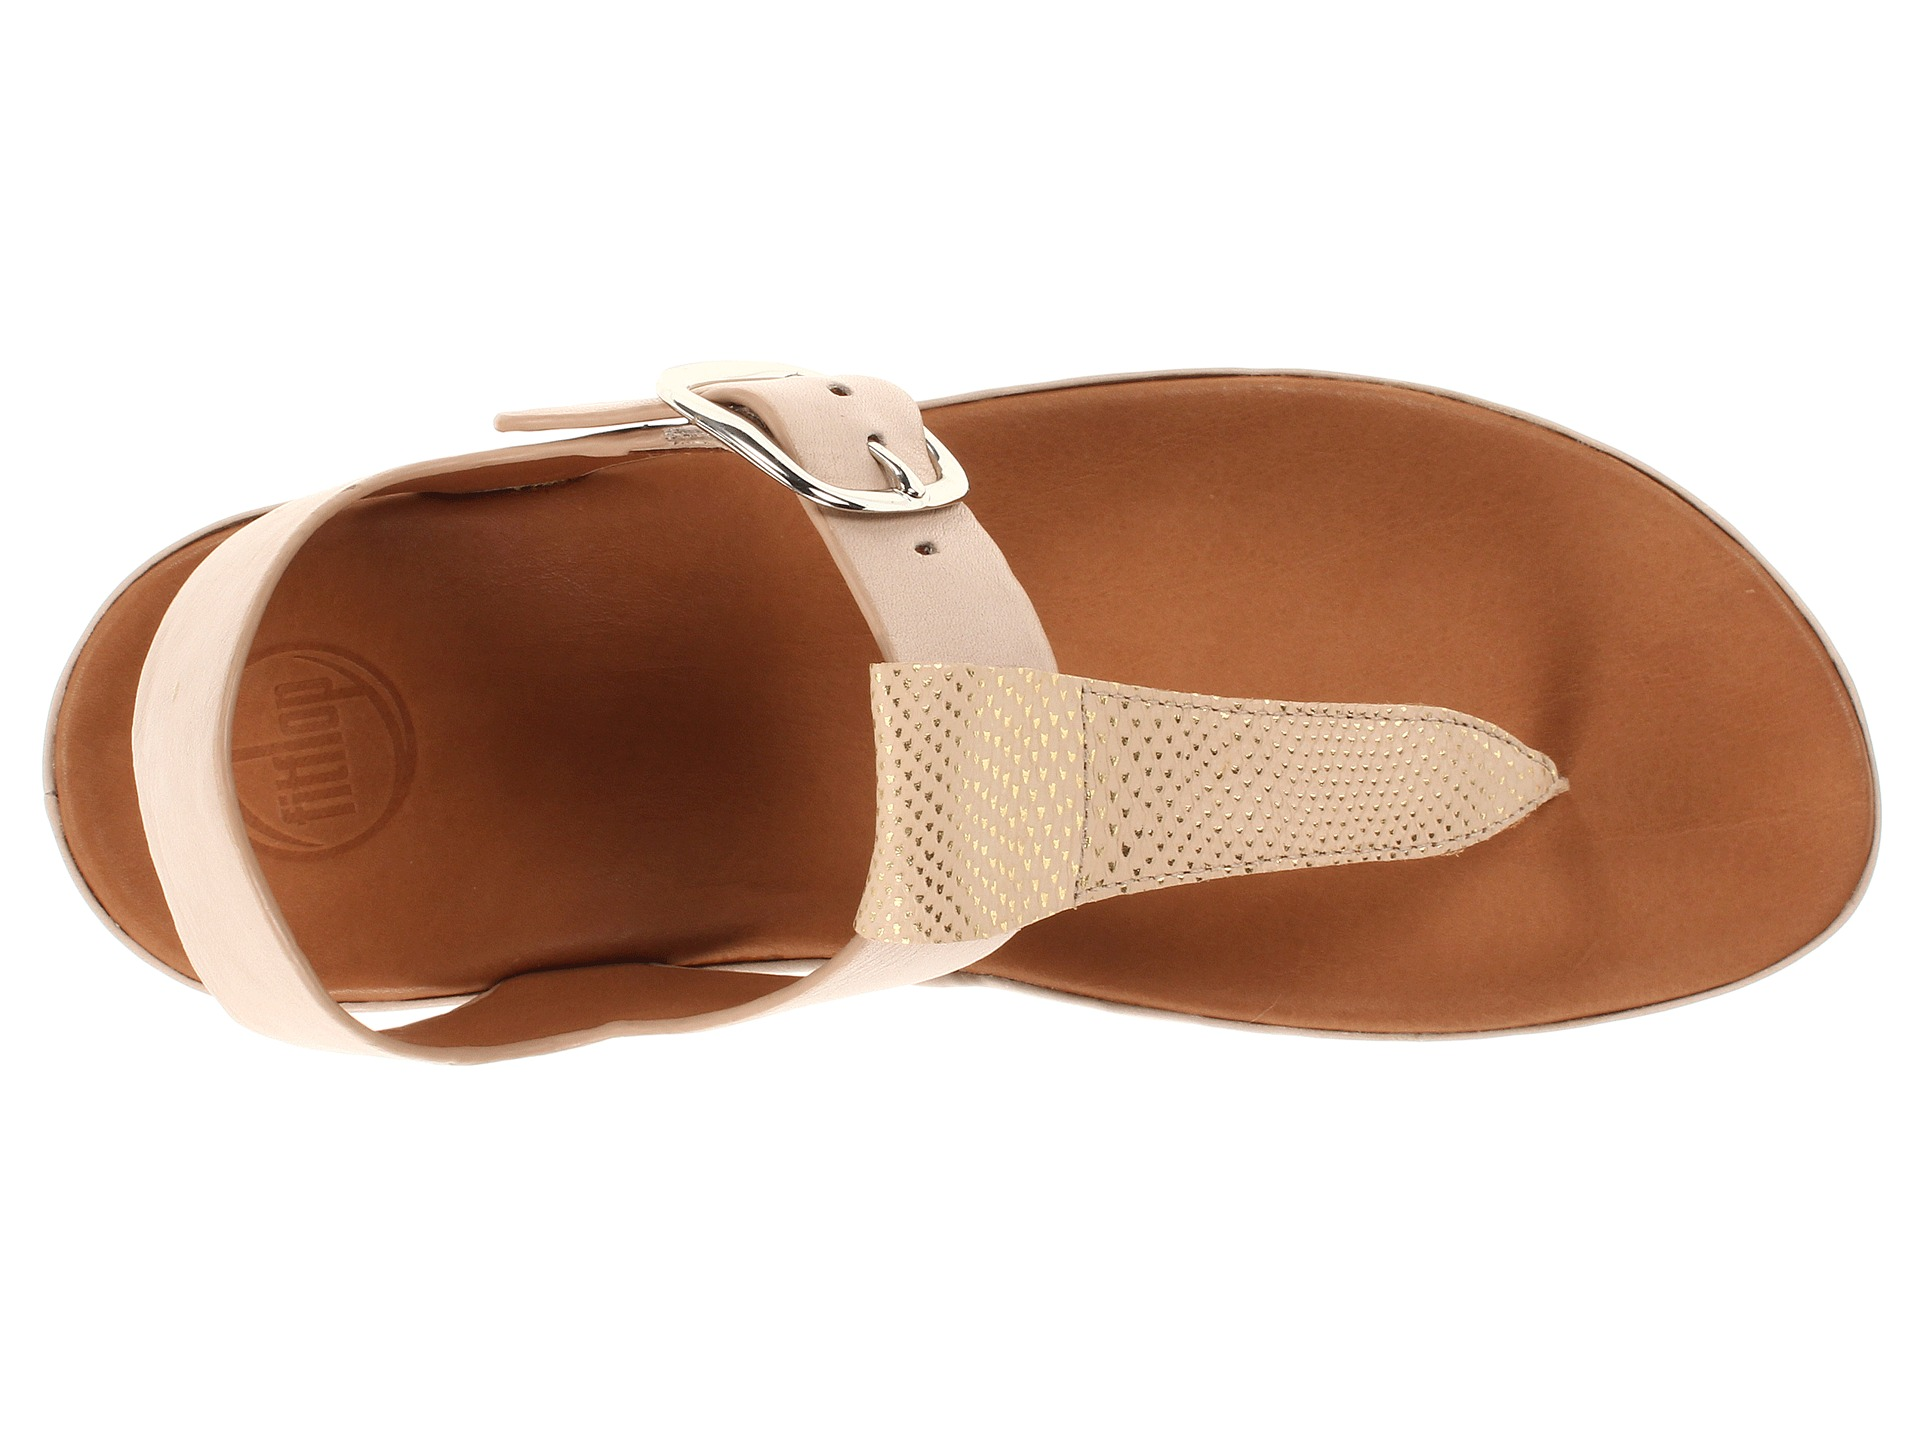 3c111cf7c7a4 No results for fitflop tia - Search Zappos